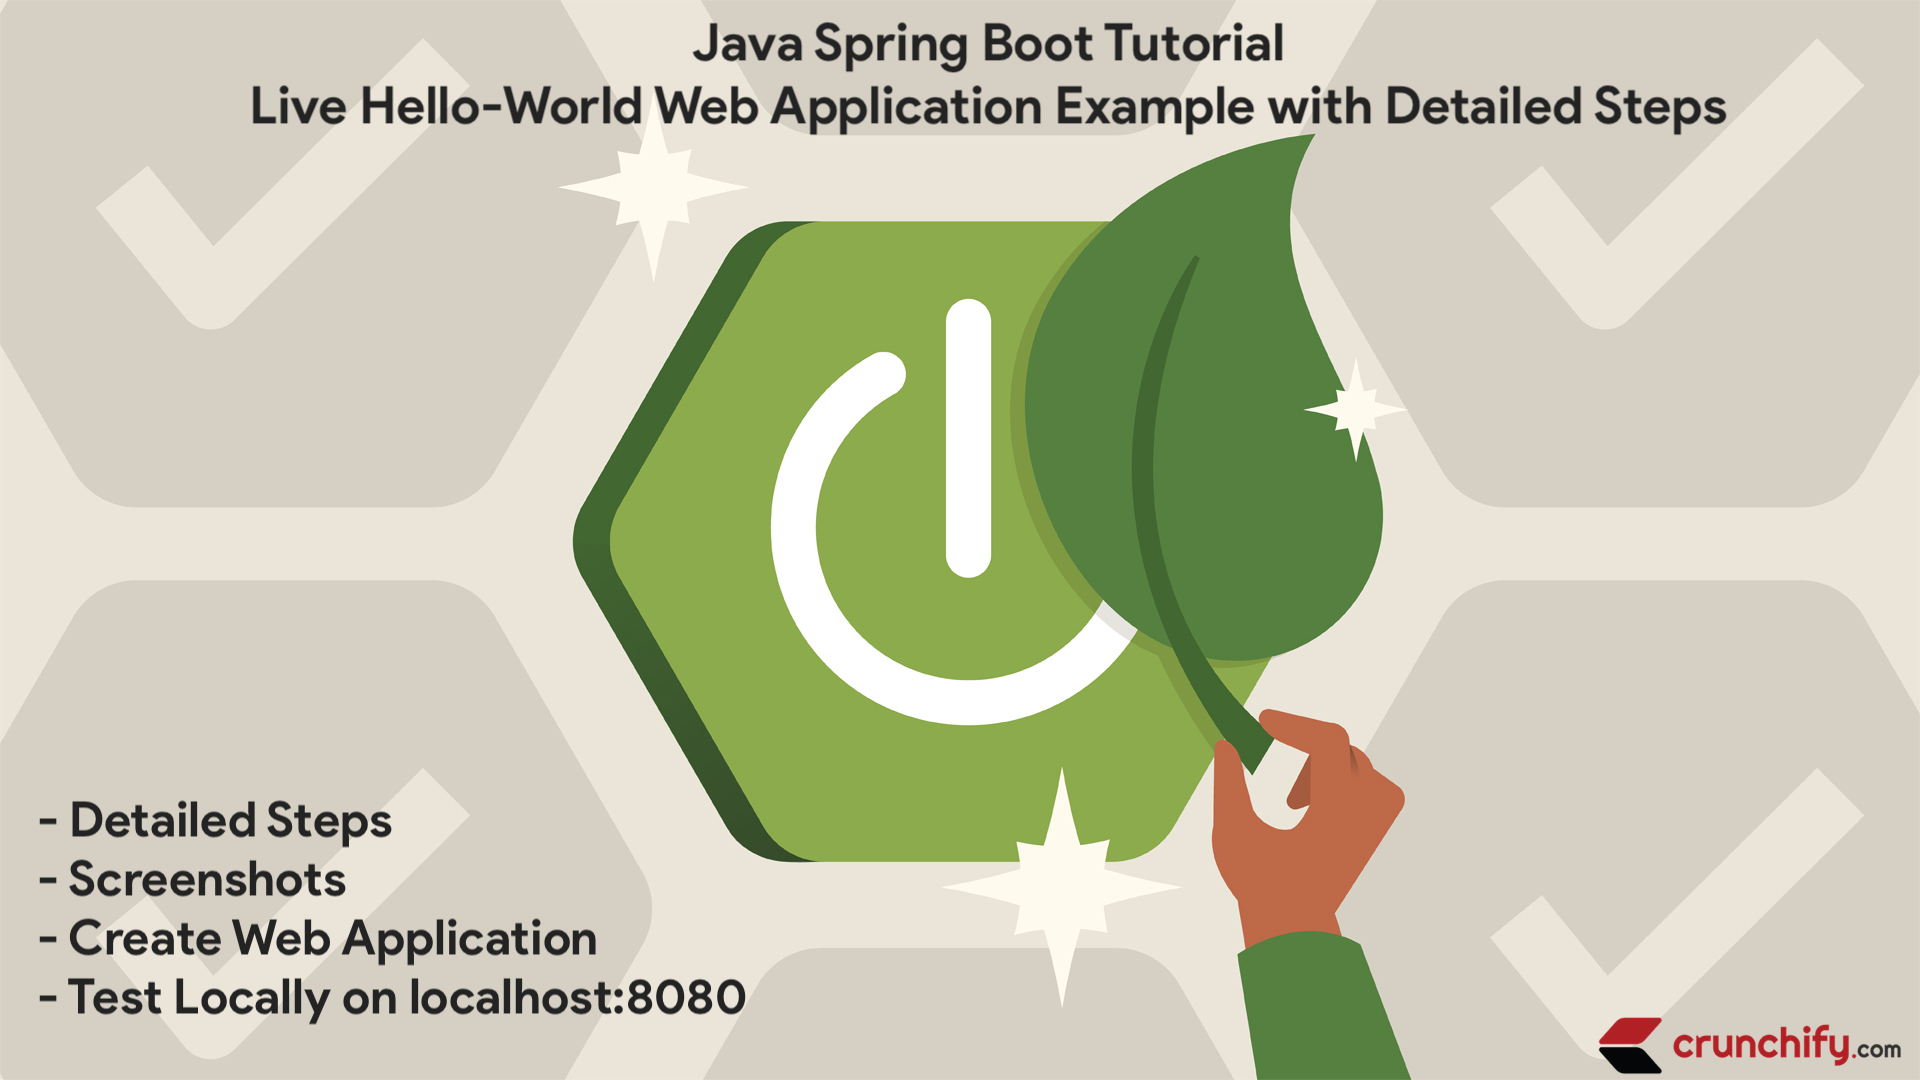 Spring Boot Tutorial by Crunchify LLC